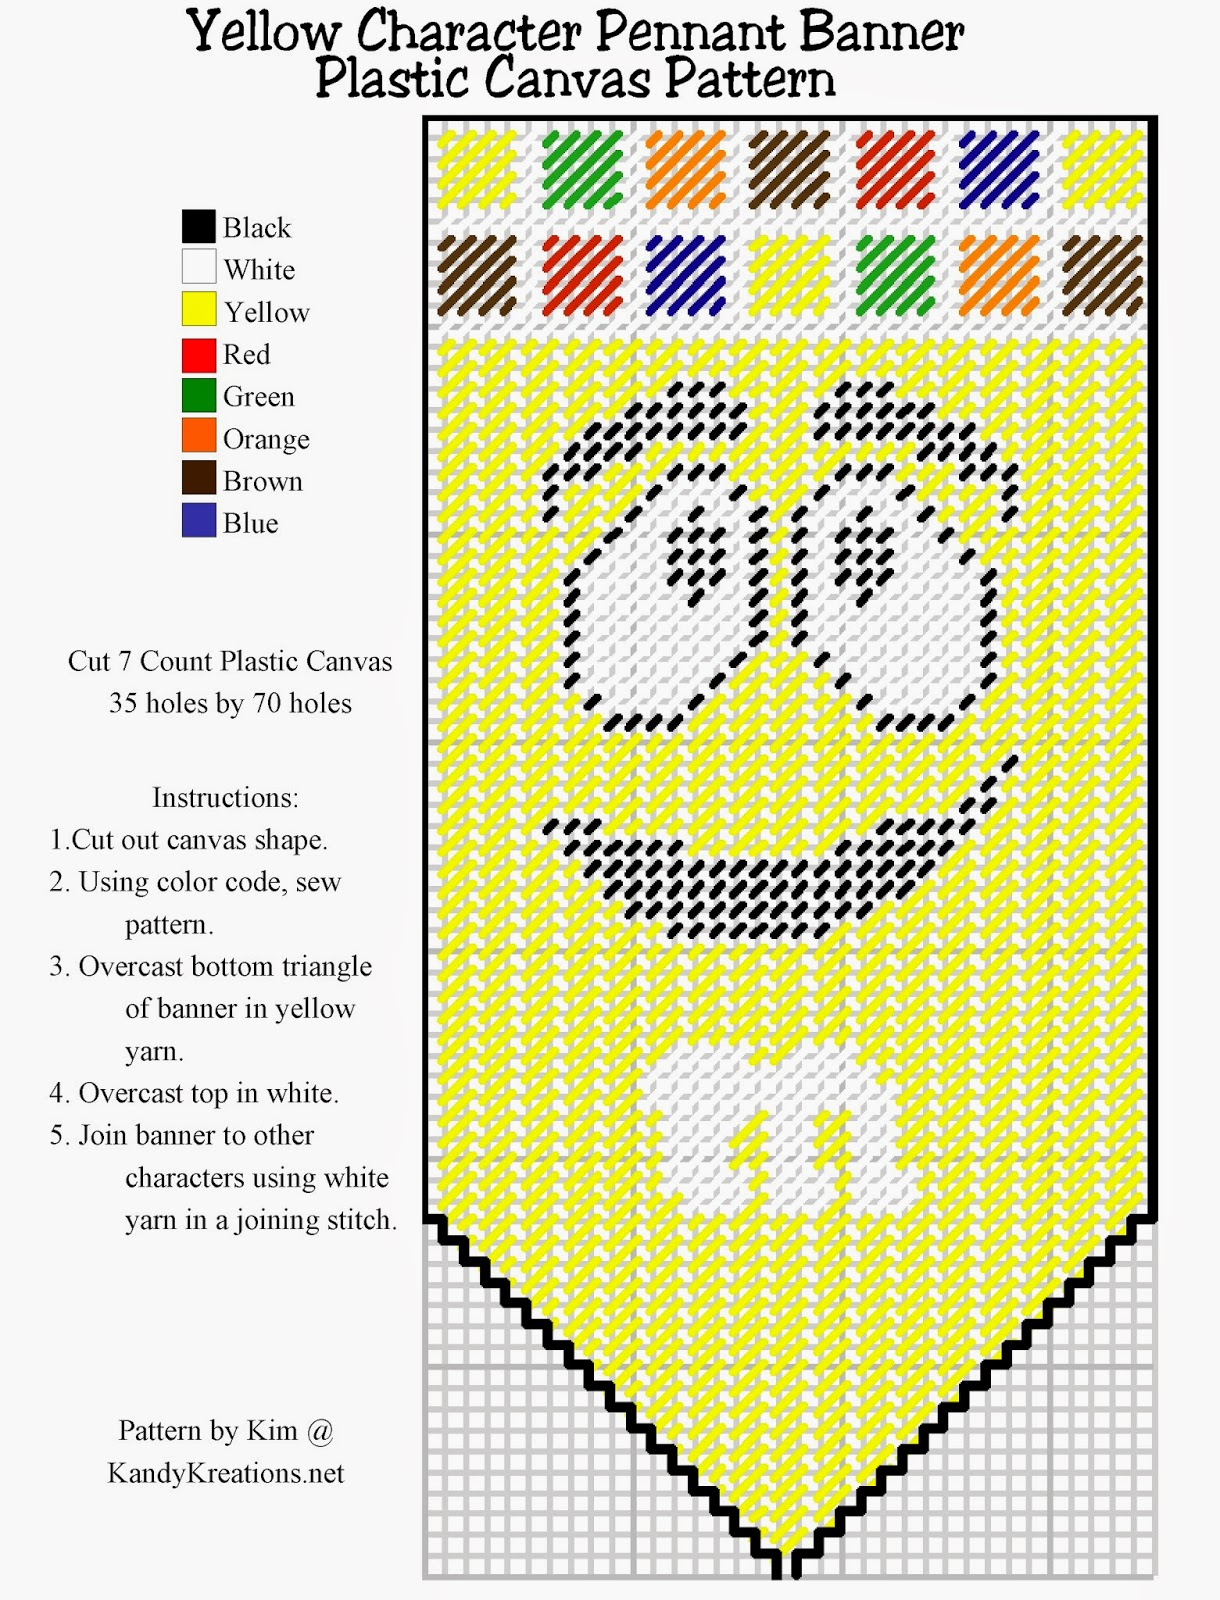 Make your own pennant banner with the yellow M&M character using this Plastic canvas pattern freebie.  Simply right click and save this pattern to create your own party decoration or kitchen decor.